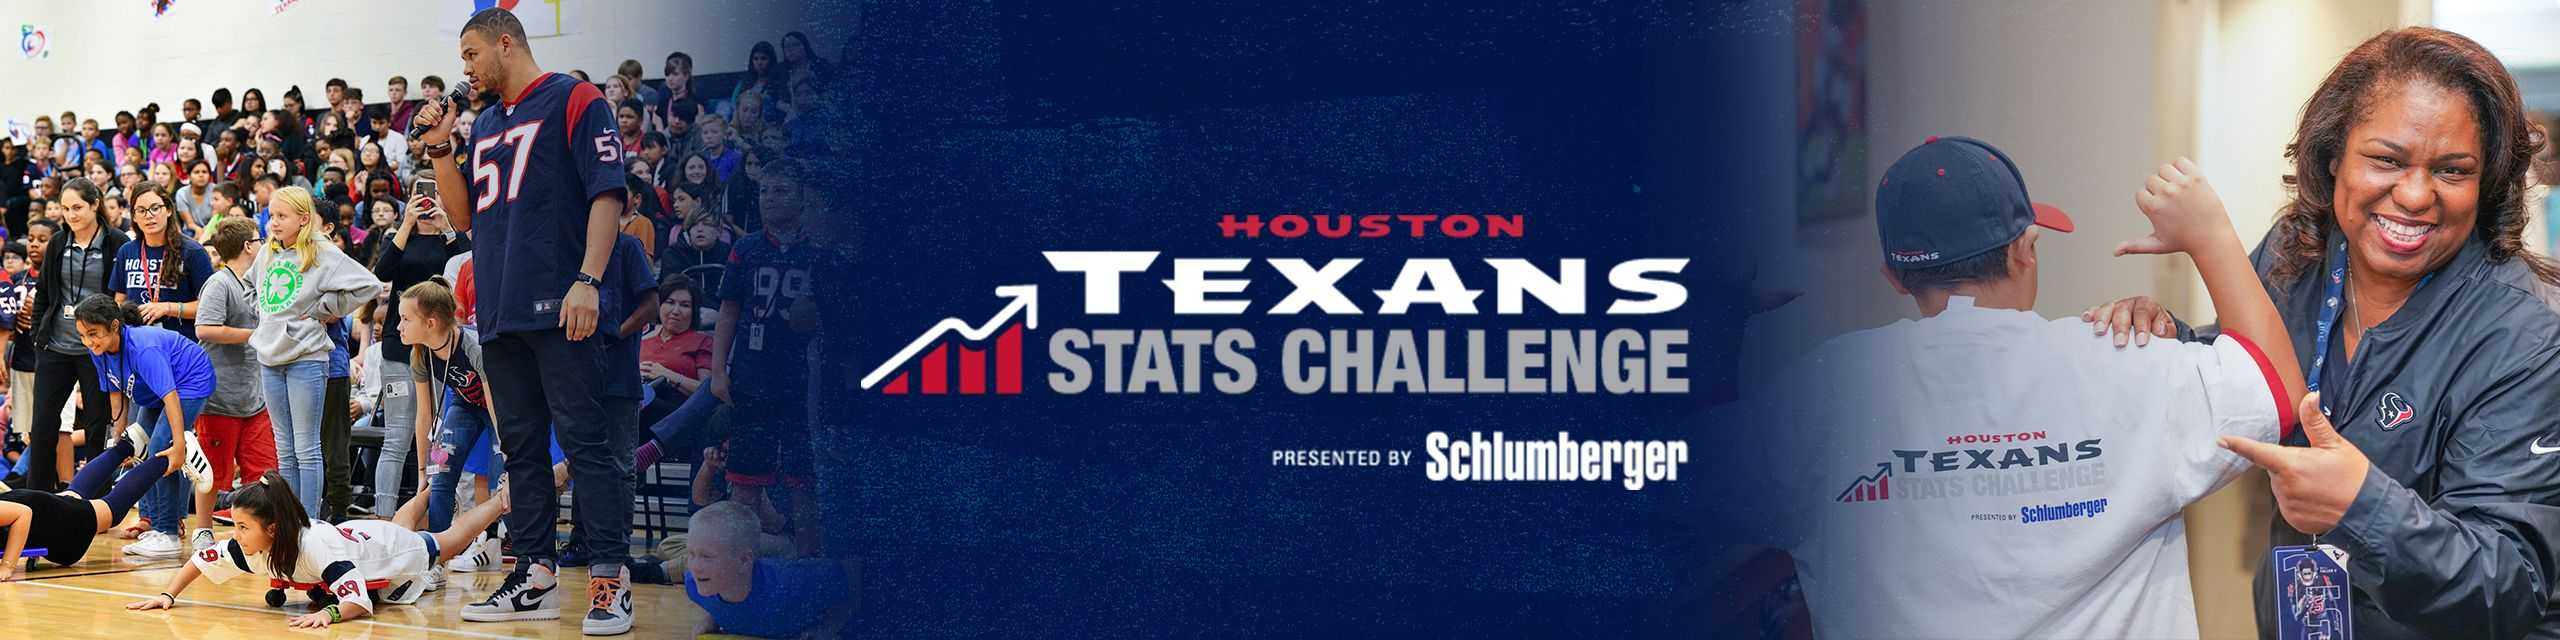 Houston Texans Stats Challenge presented by Schlumberger